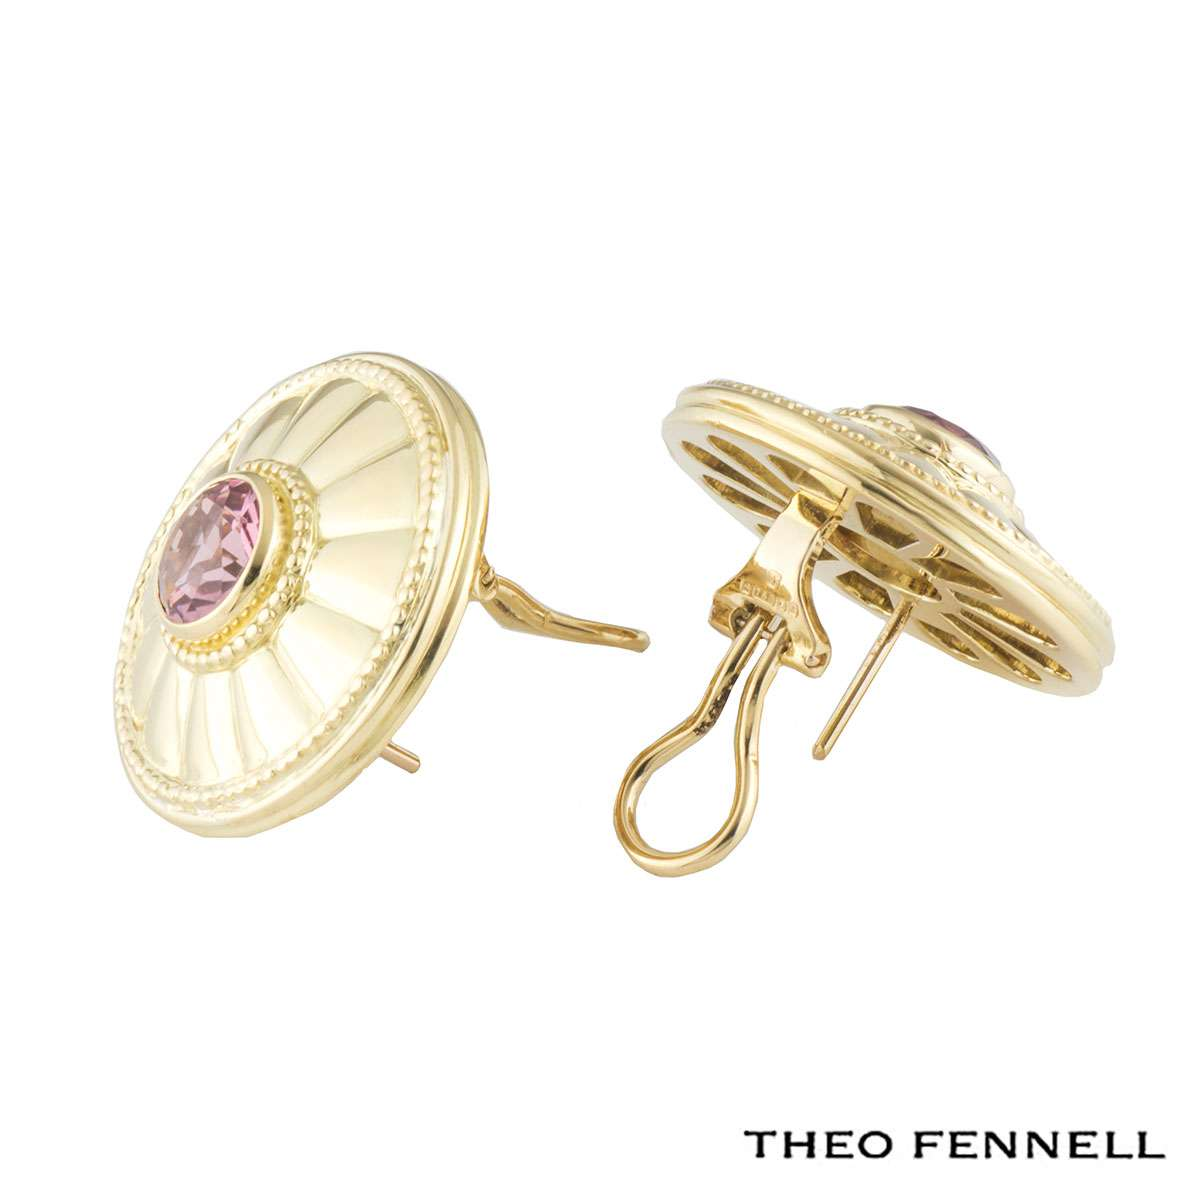 Theo Fennell Tourmaline Earrings